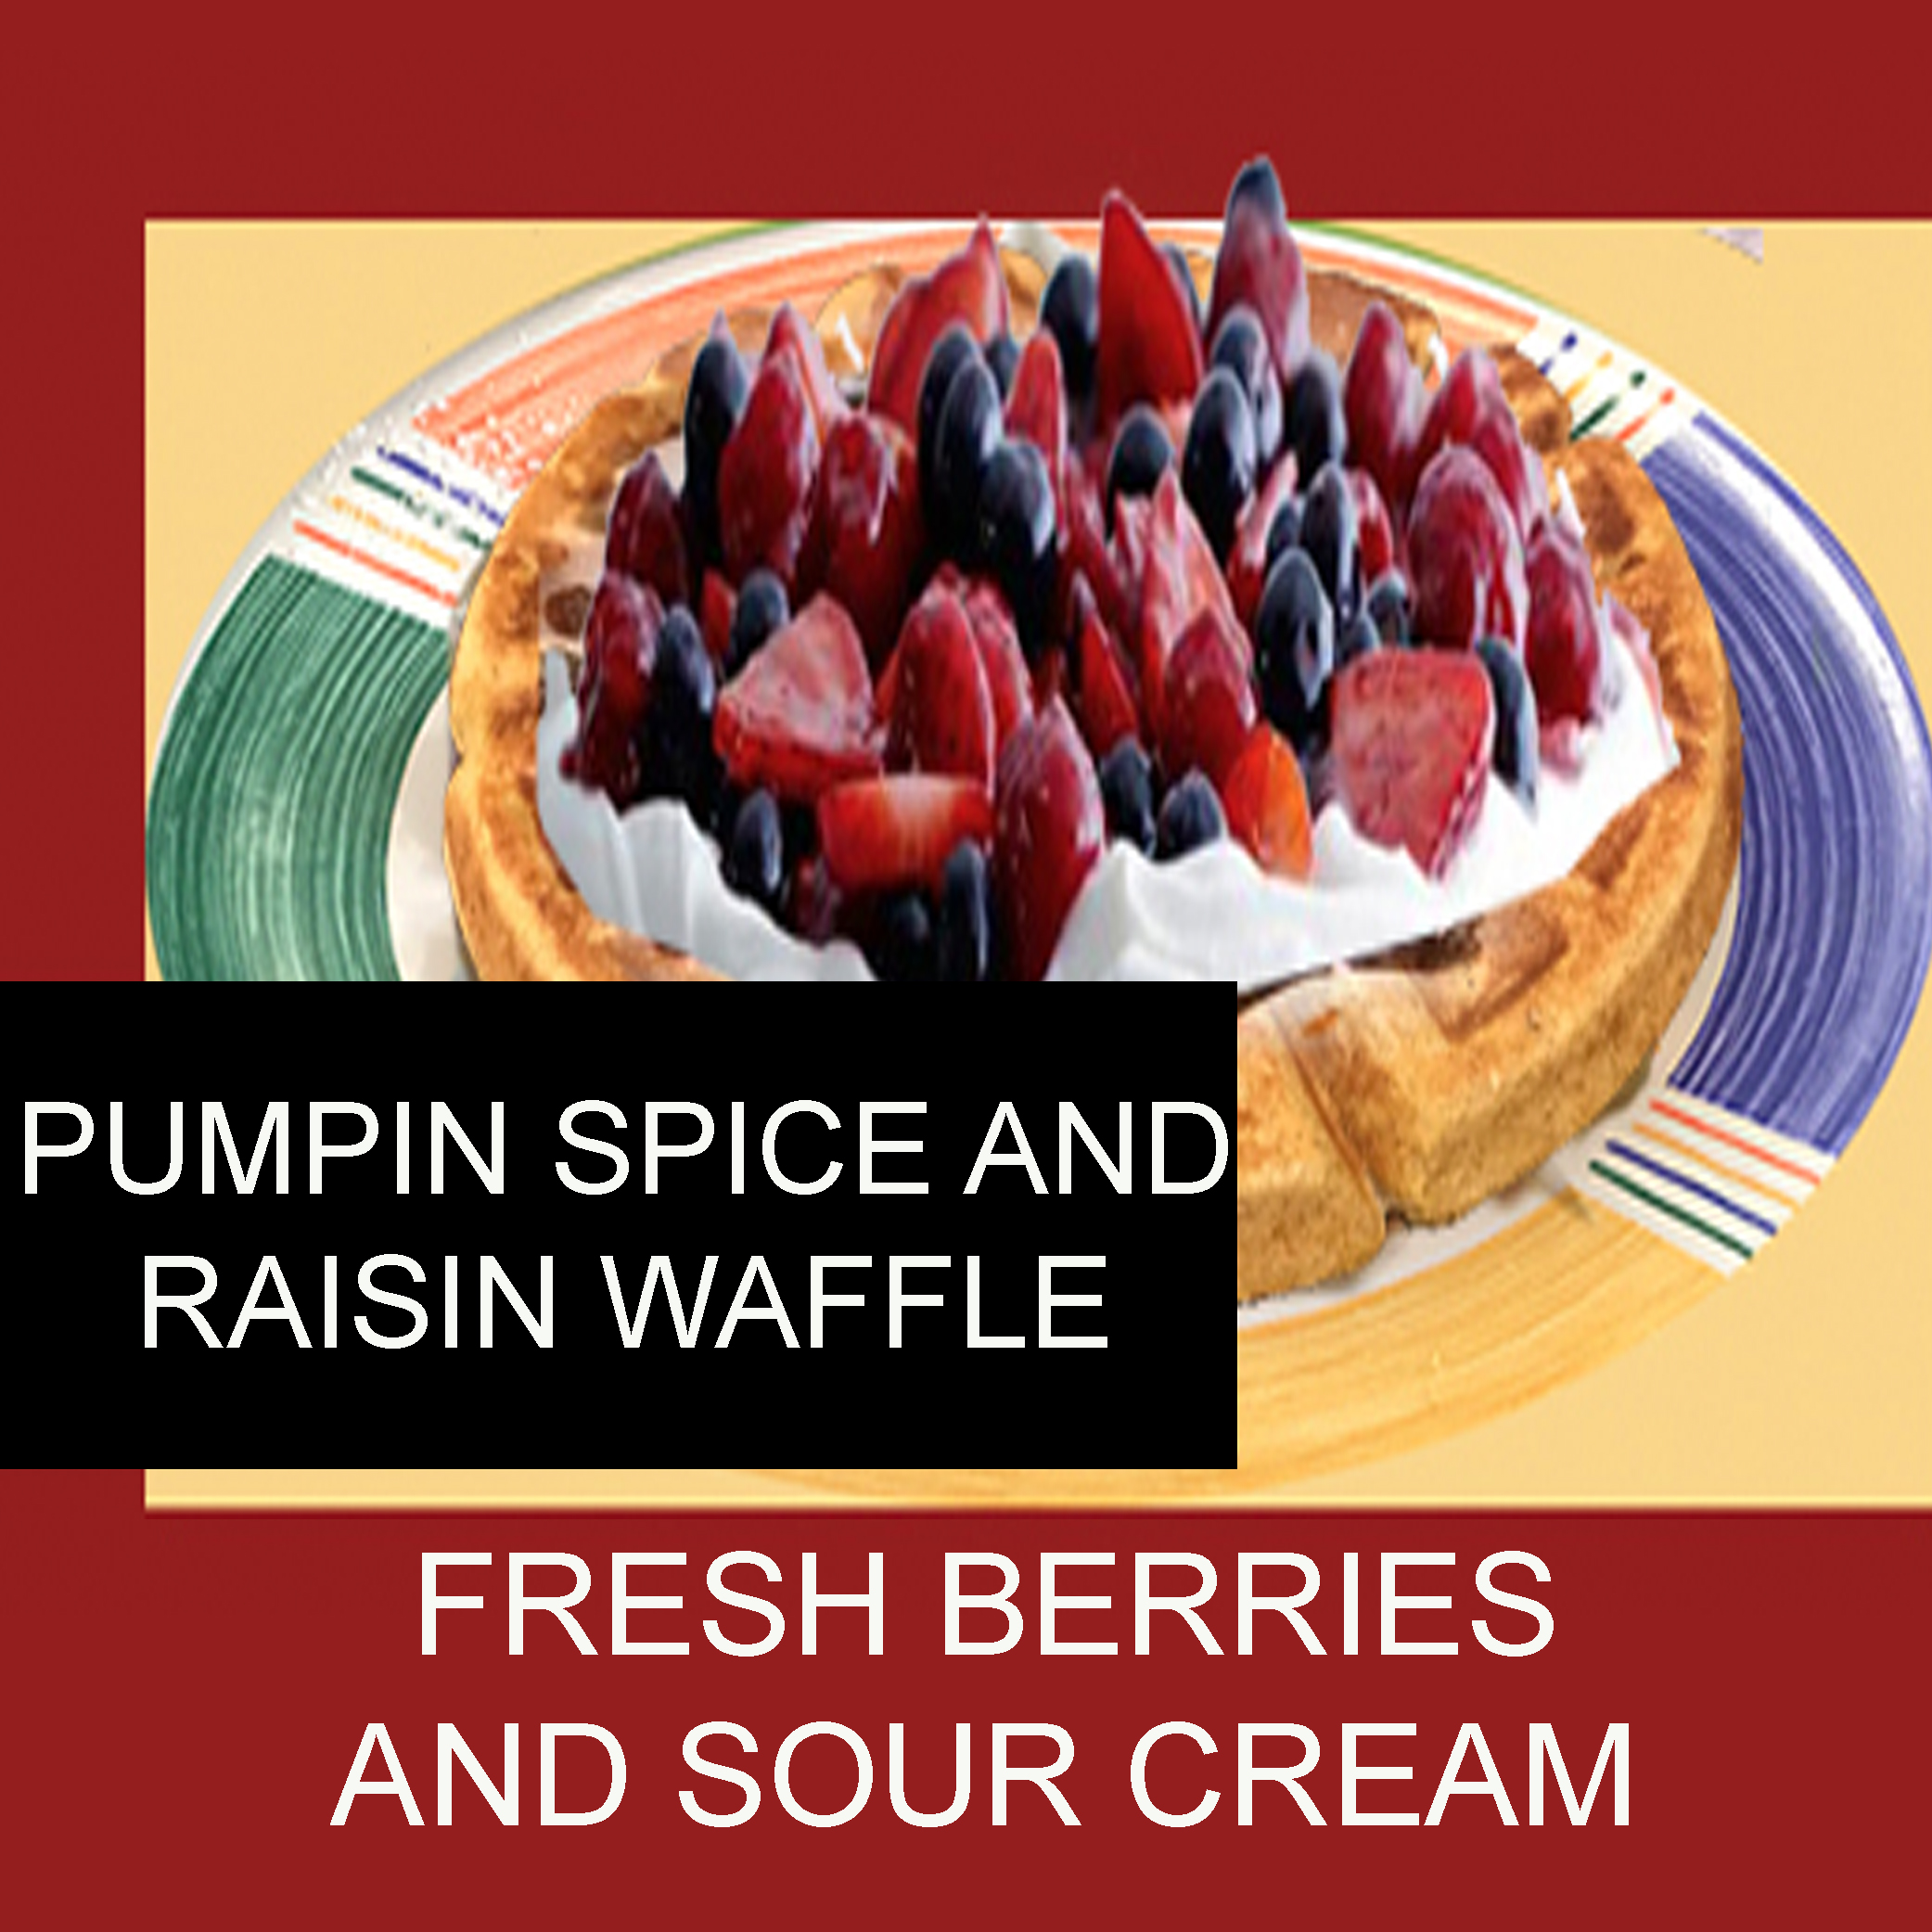 pumkin spice raisin waffle with fresh berries and souer cream